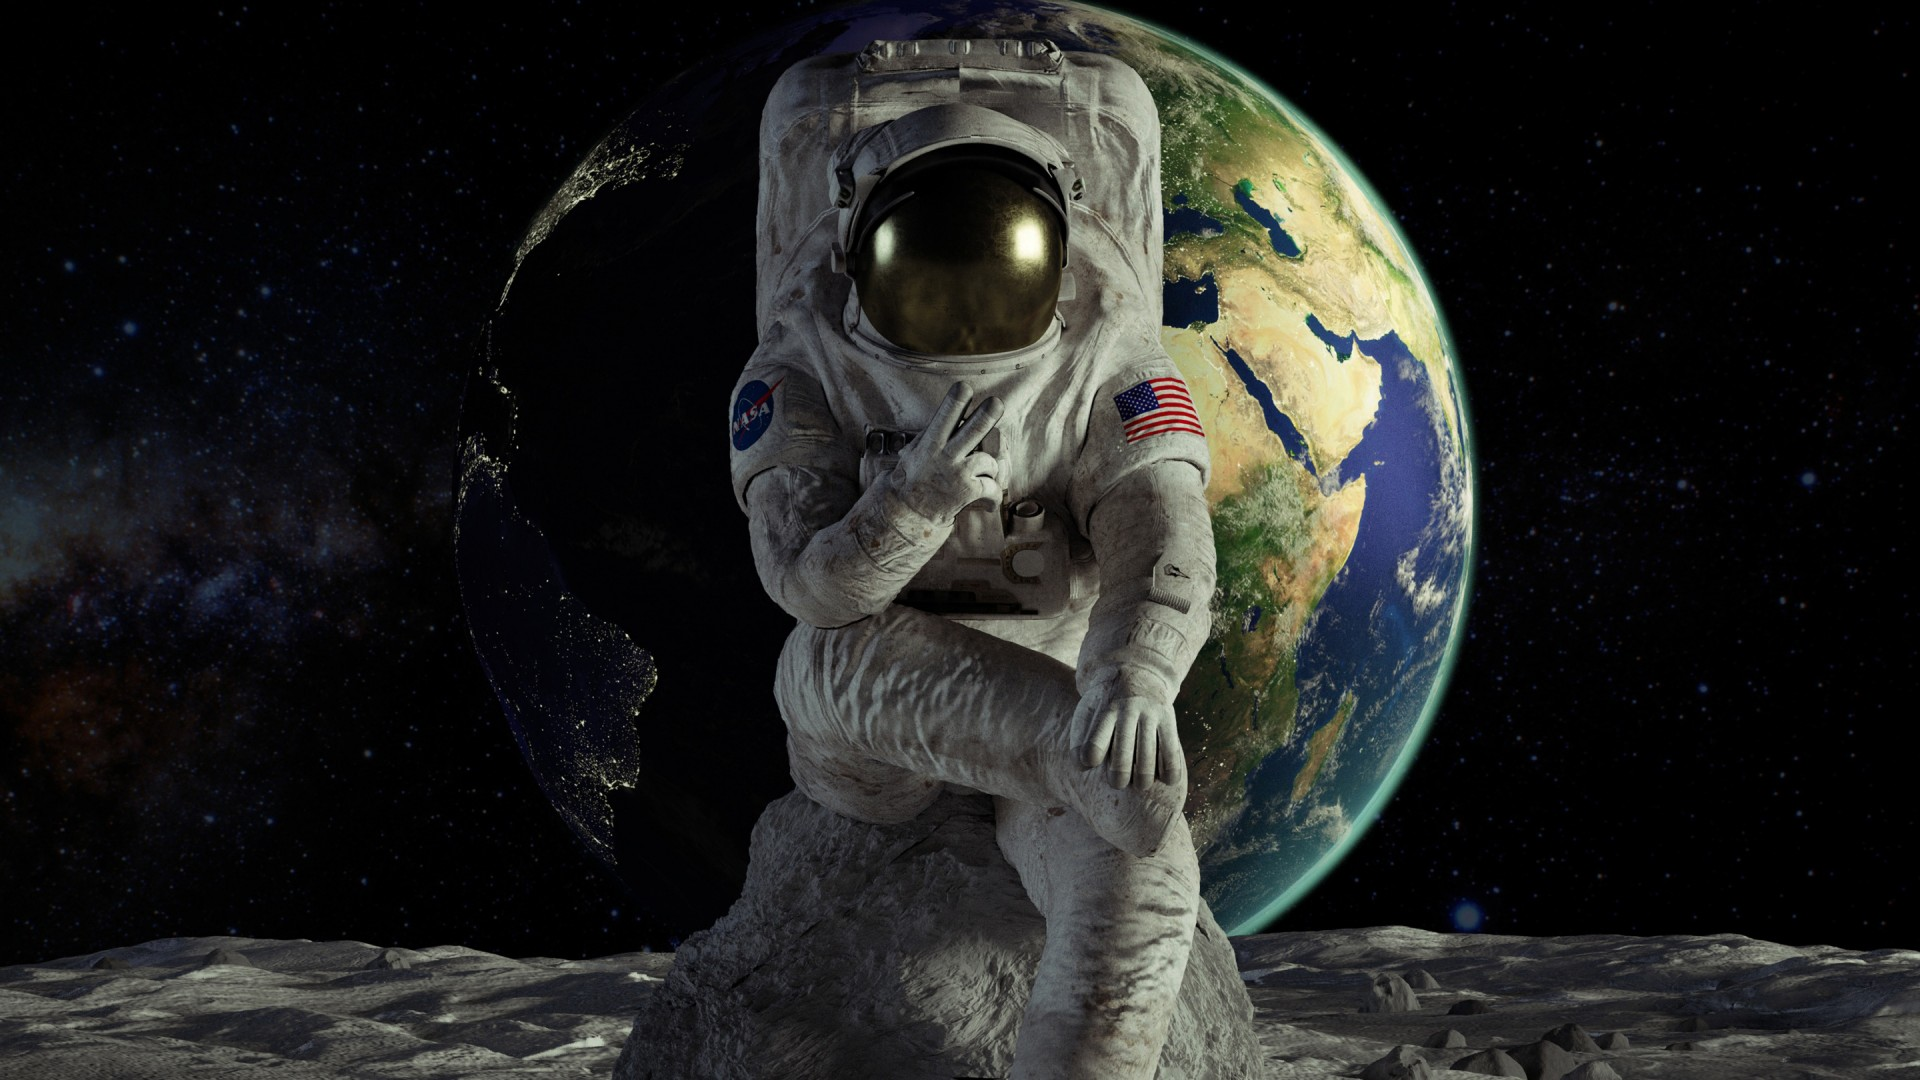 3d Wallpaper Hd Universe Astronaut Wallpapers Hd Wallpapers Id 27236